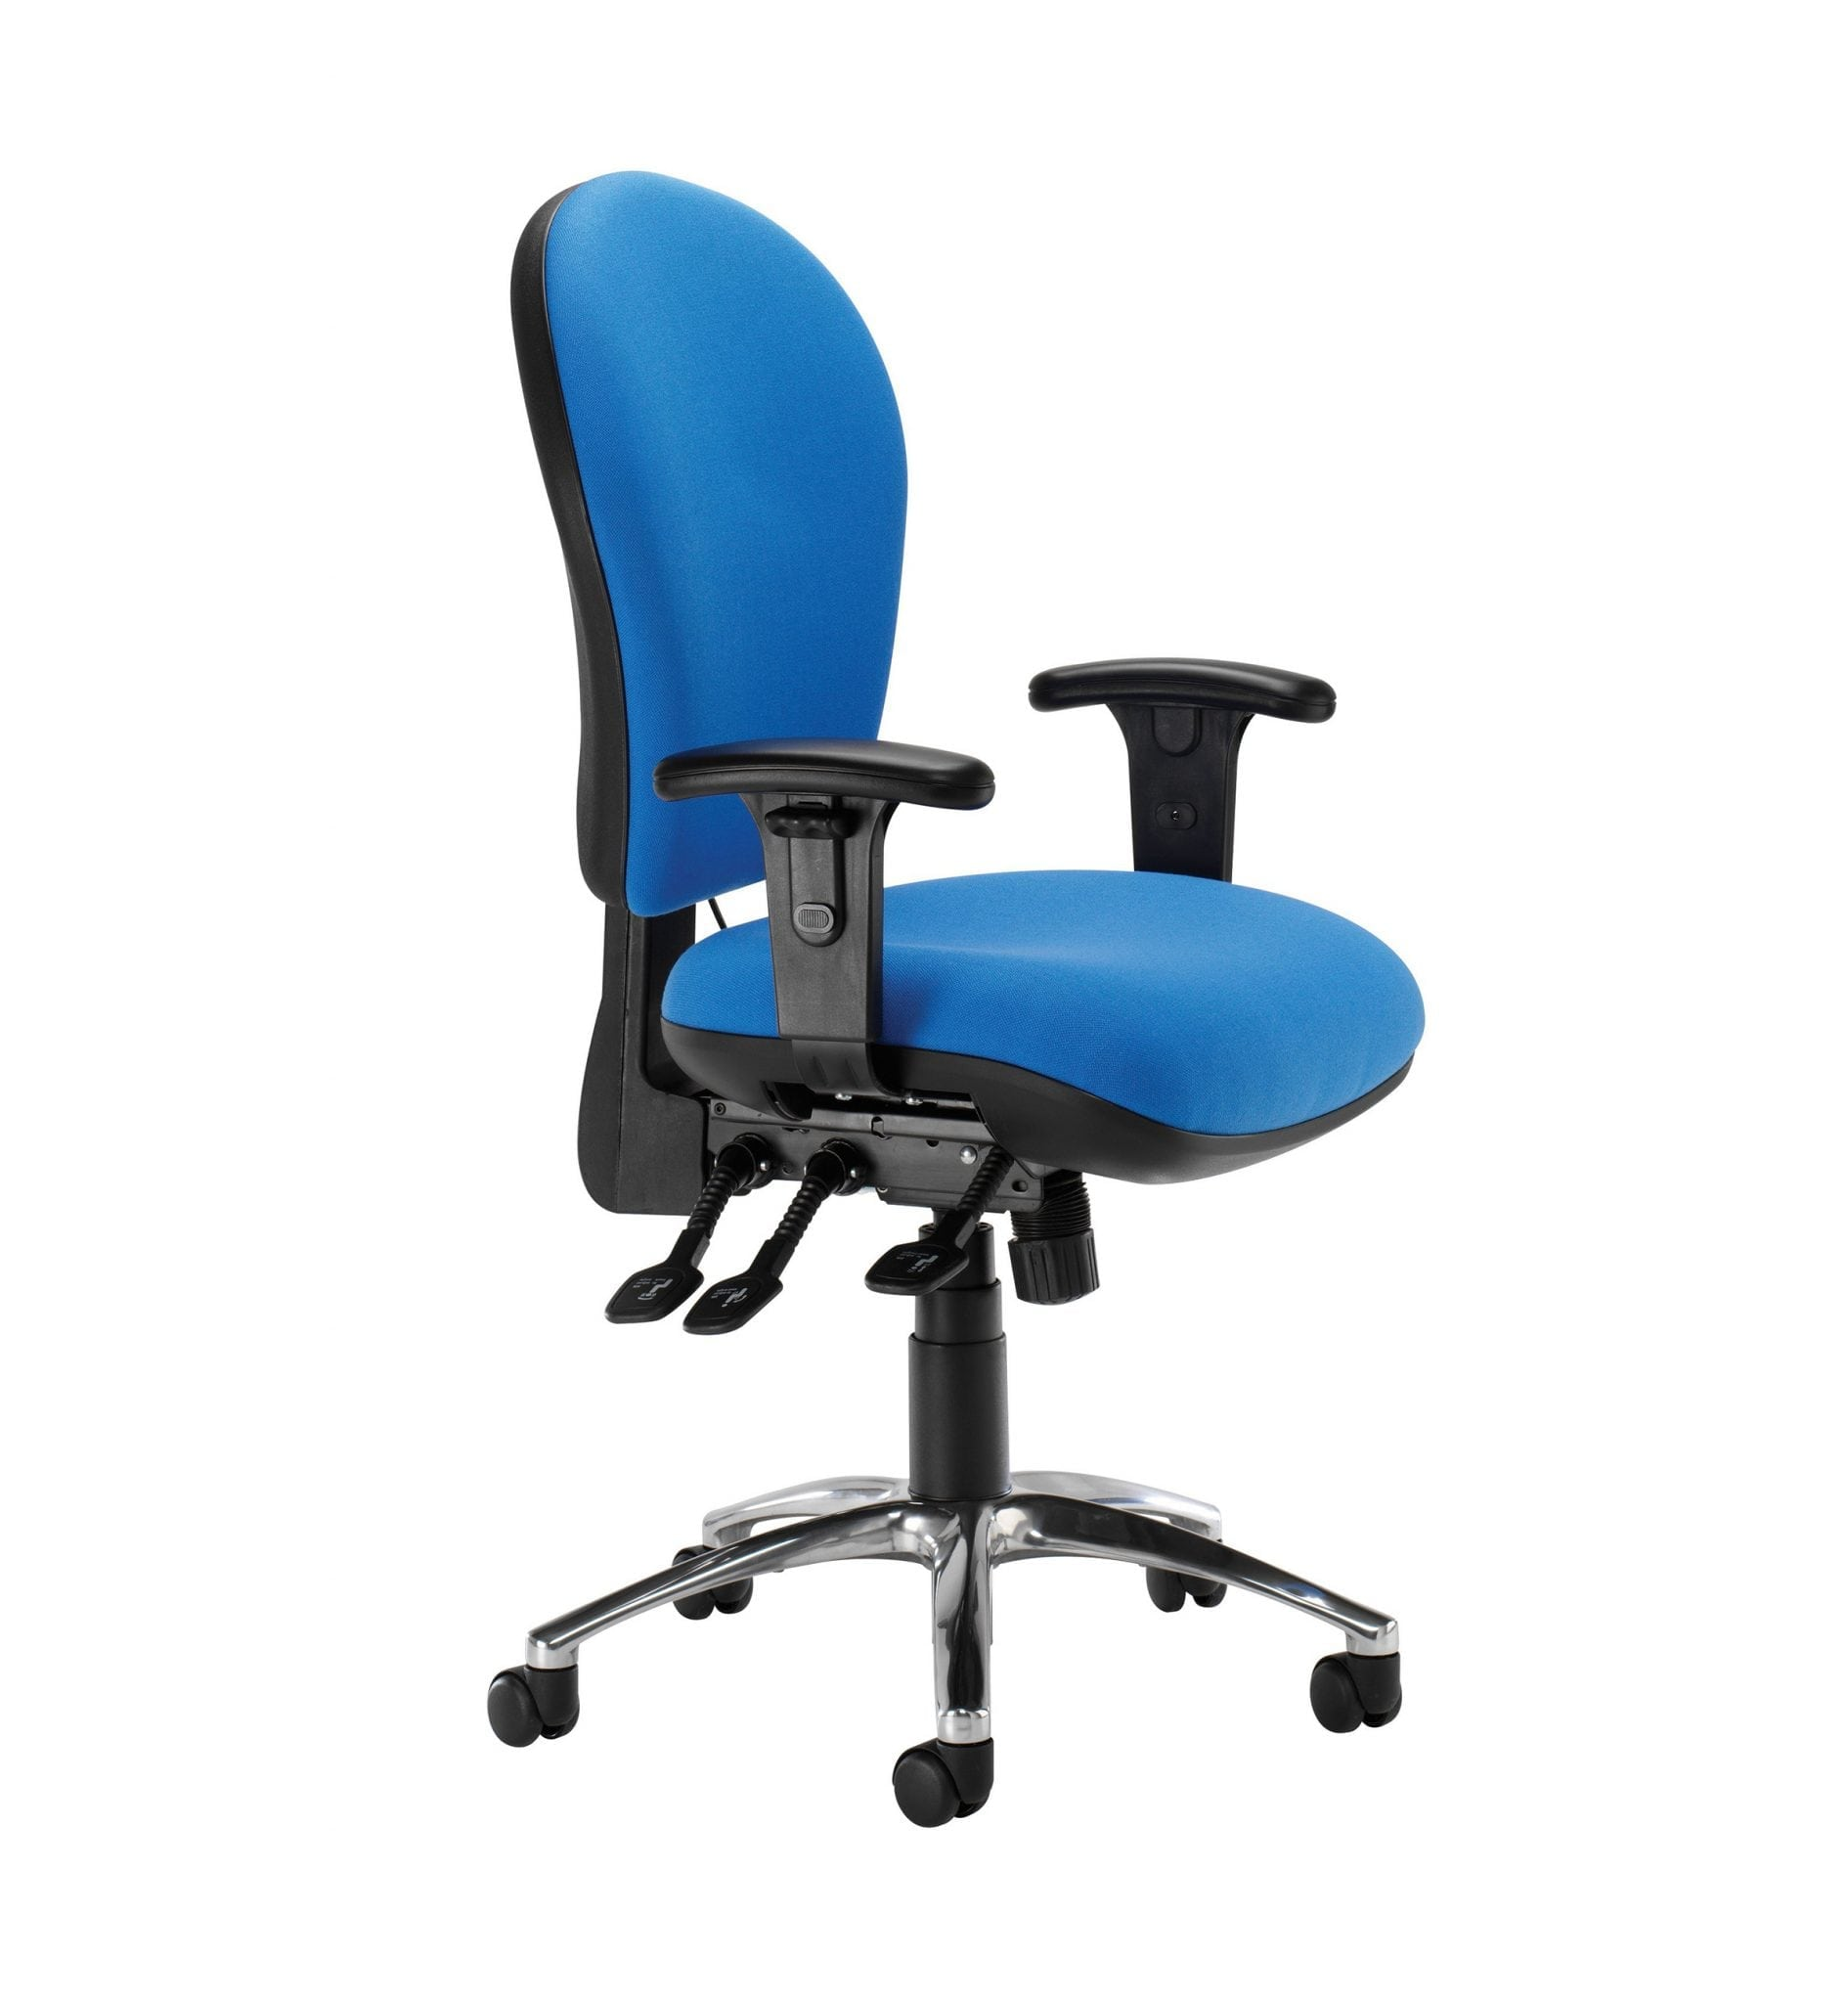 BL21ADJ – Blenheim range - Classic task office chair with advanced operator plus functionality and adjustable arms – from Summit Chairs